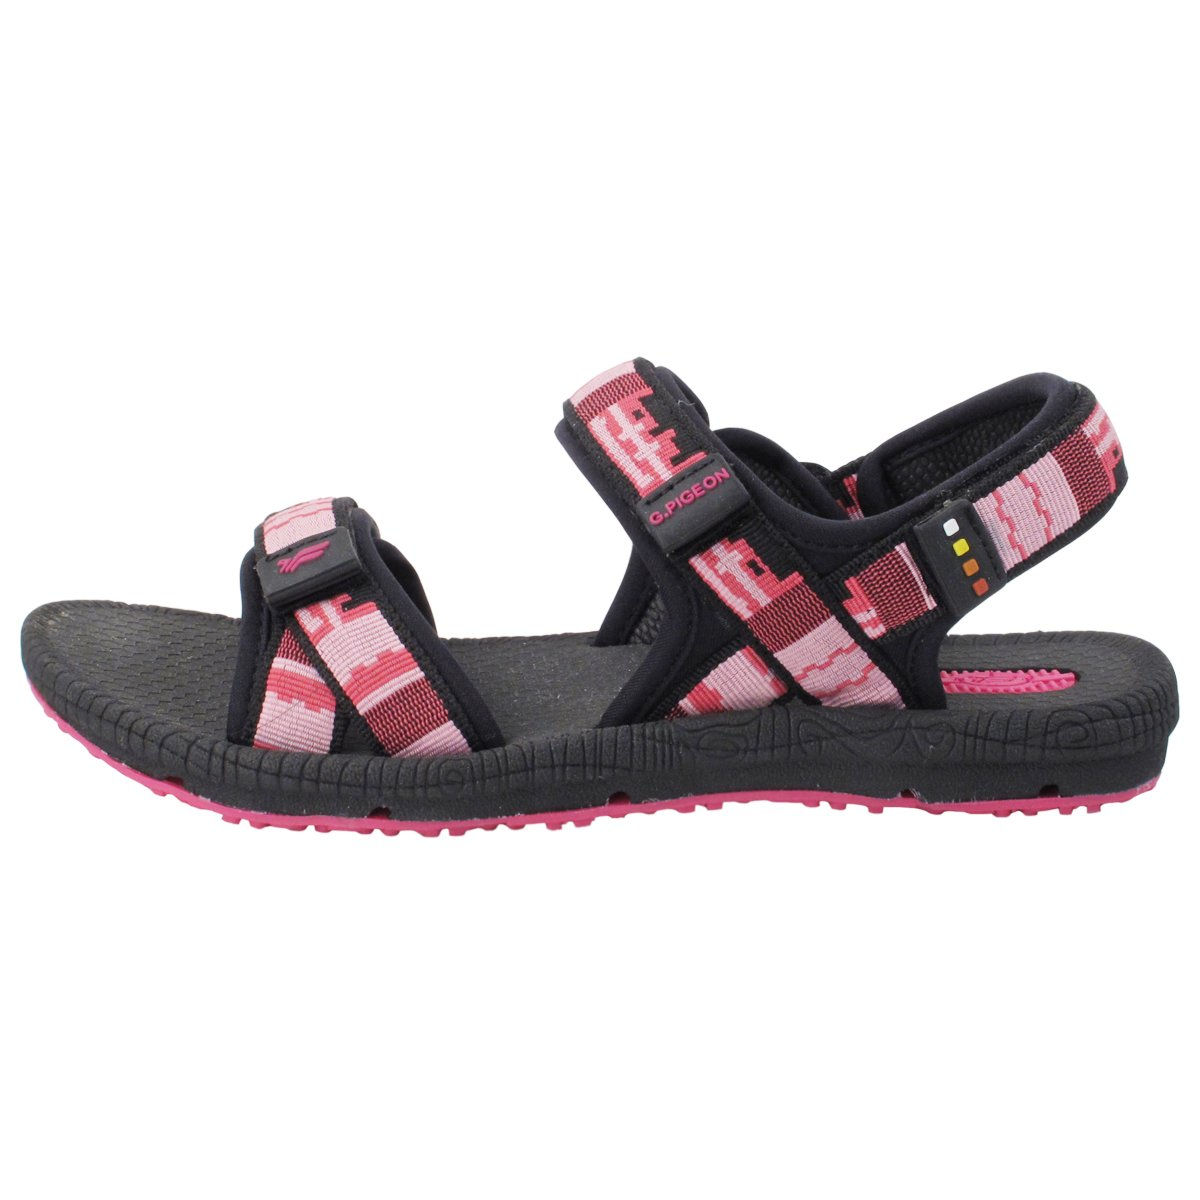 Gold Pigeon Shoes GP5931 Light Weight Adjustable Outdoor Water Sling Back Sandals for Men & Women B0796M5VR7 EU38: Women 7.5/8 & Men 6.5/7 (252.6mm)|8658 Fuchsia